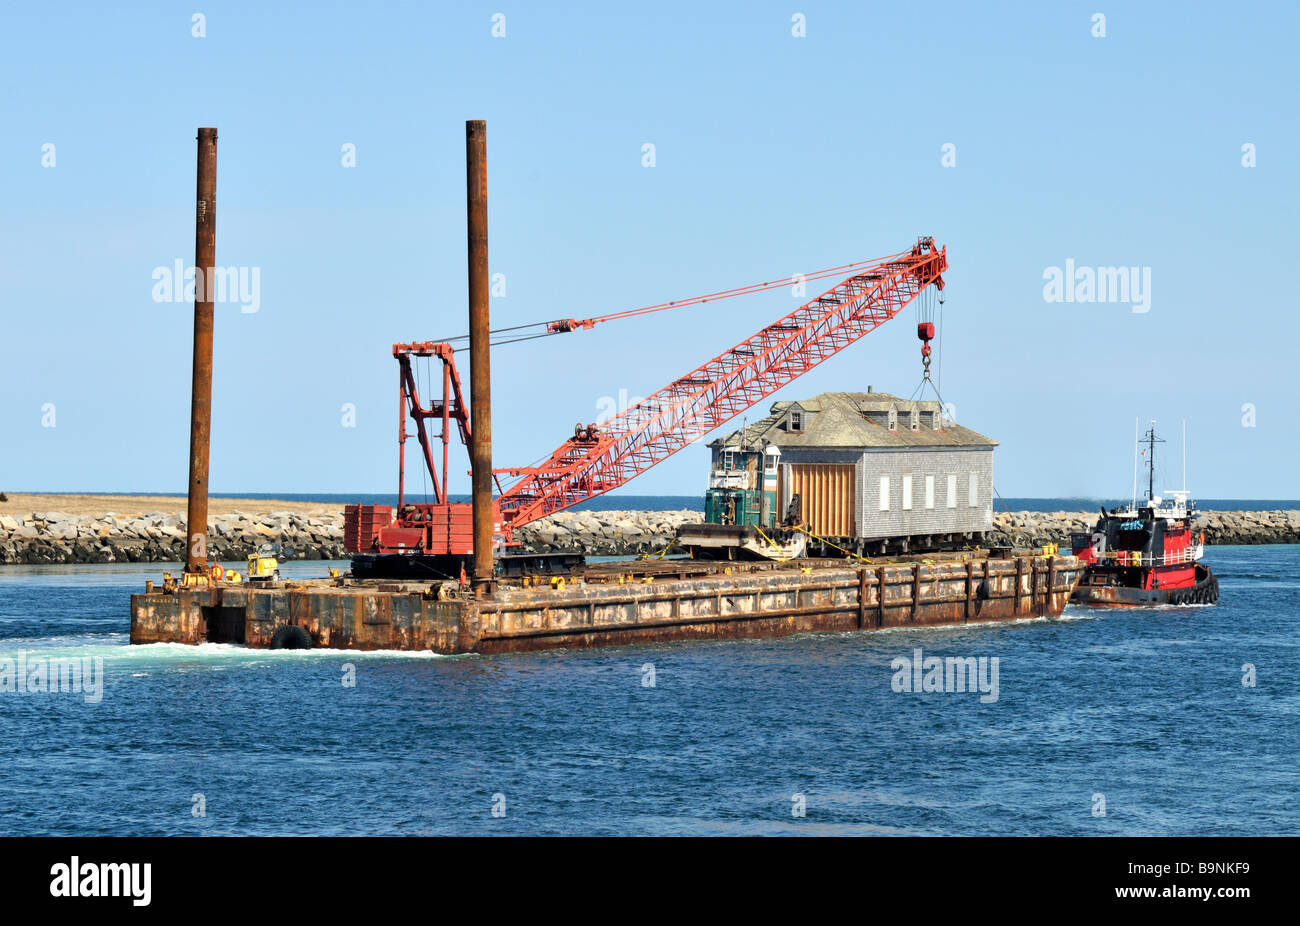 Tugboat pulling a house and crane on a barge Stock Photo: 23218589